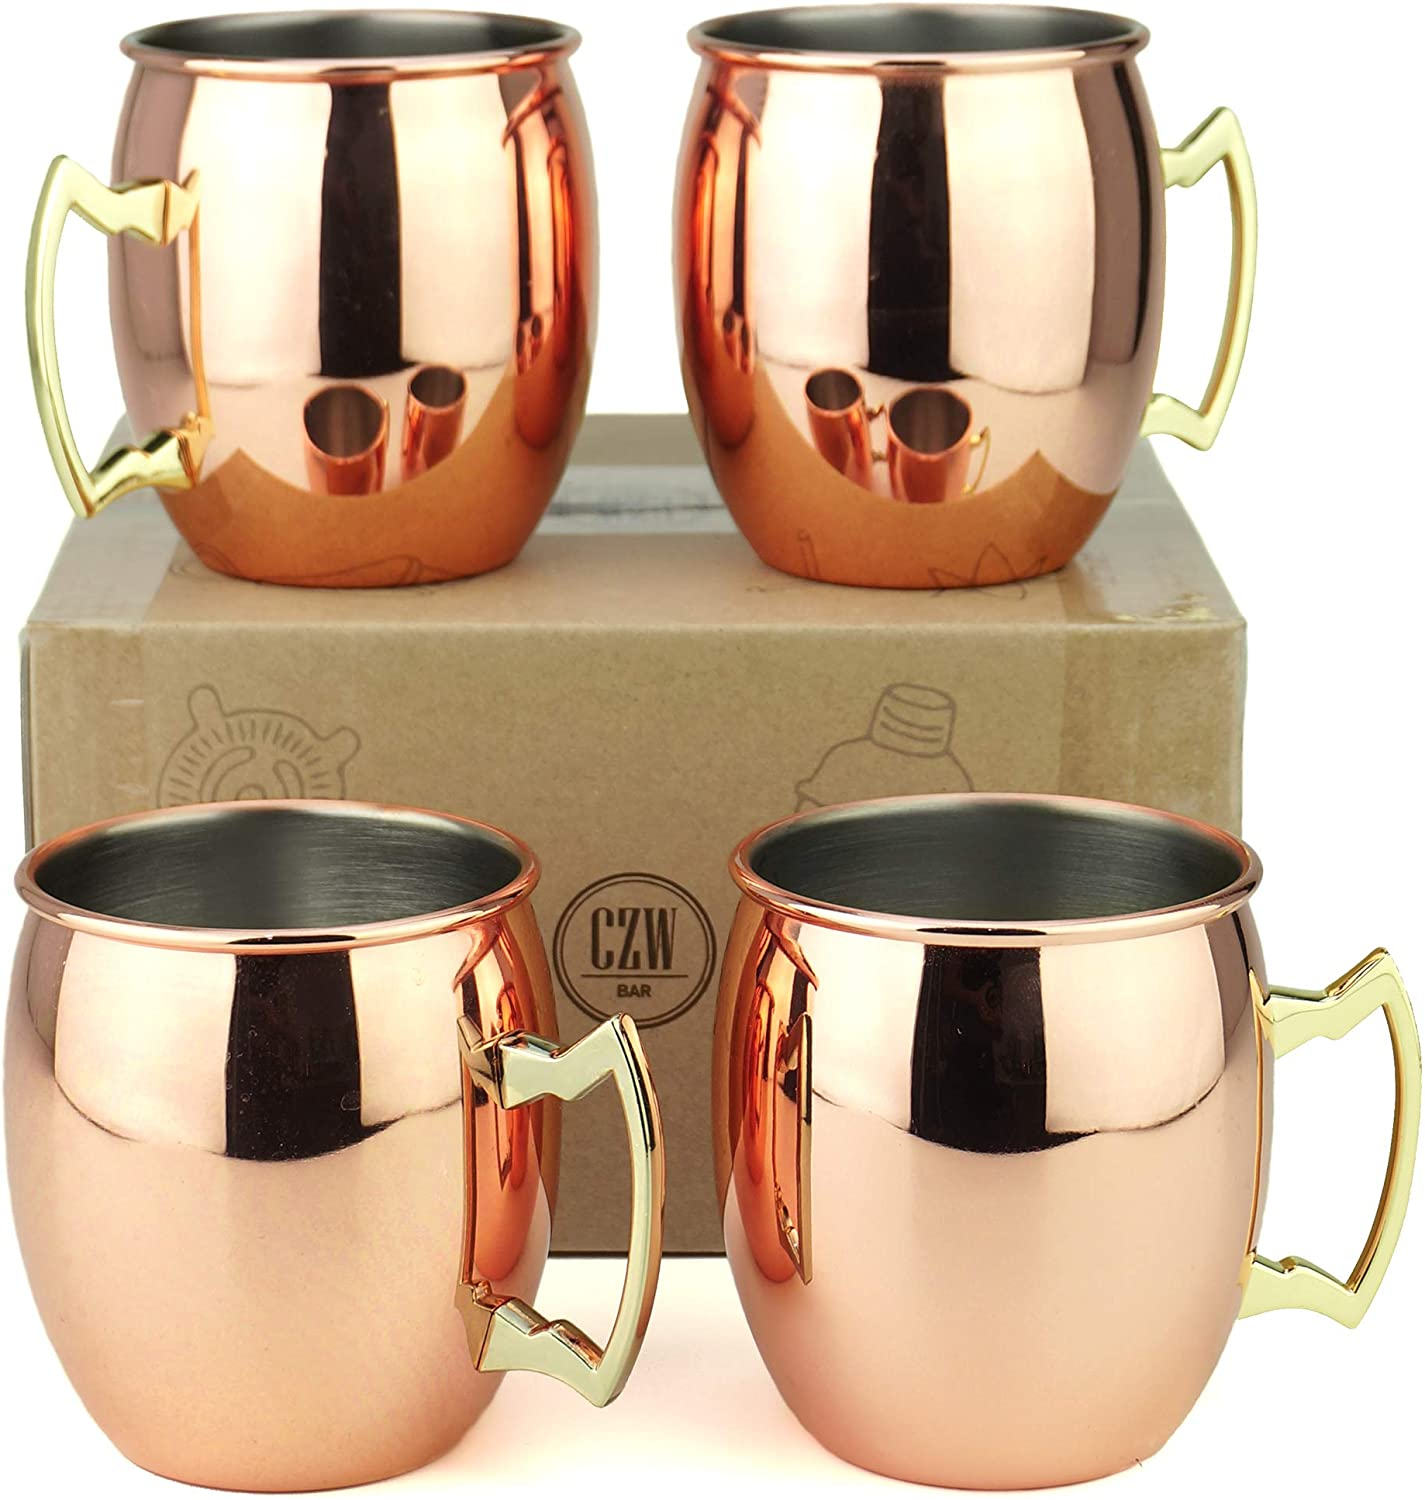 PG Copper/Rose Gold Plated Stainless Steel Moscow Mule Mug - Bar Gift Set 4 - Factory Direct (19.5 oz) - Authentic Traditional Design - Smooth Finish Original Brass Handle!